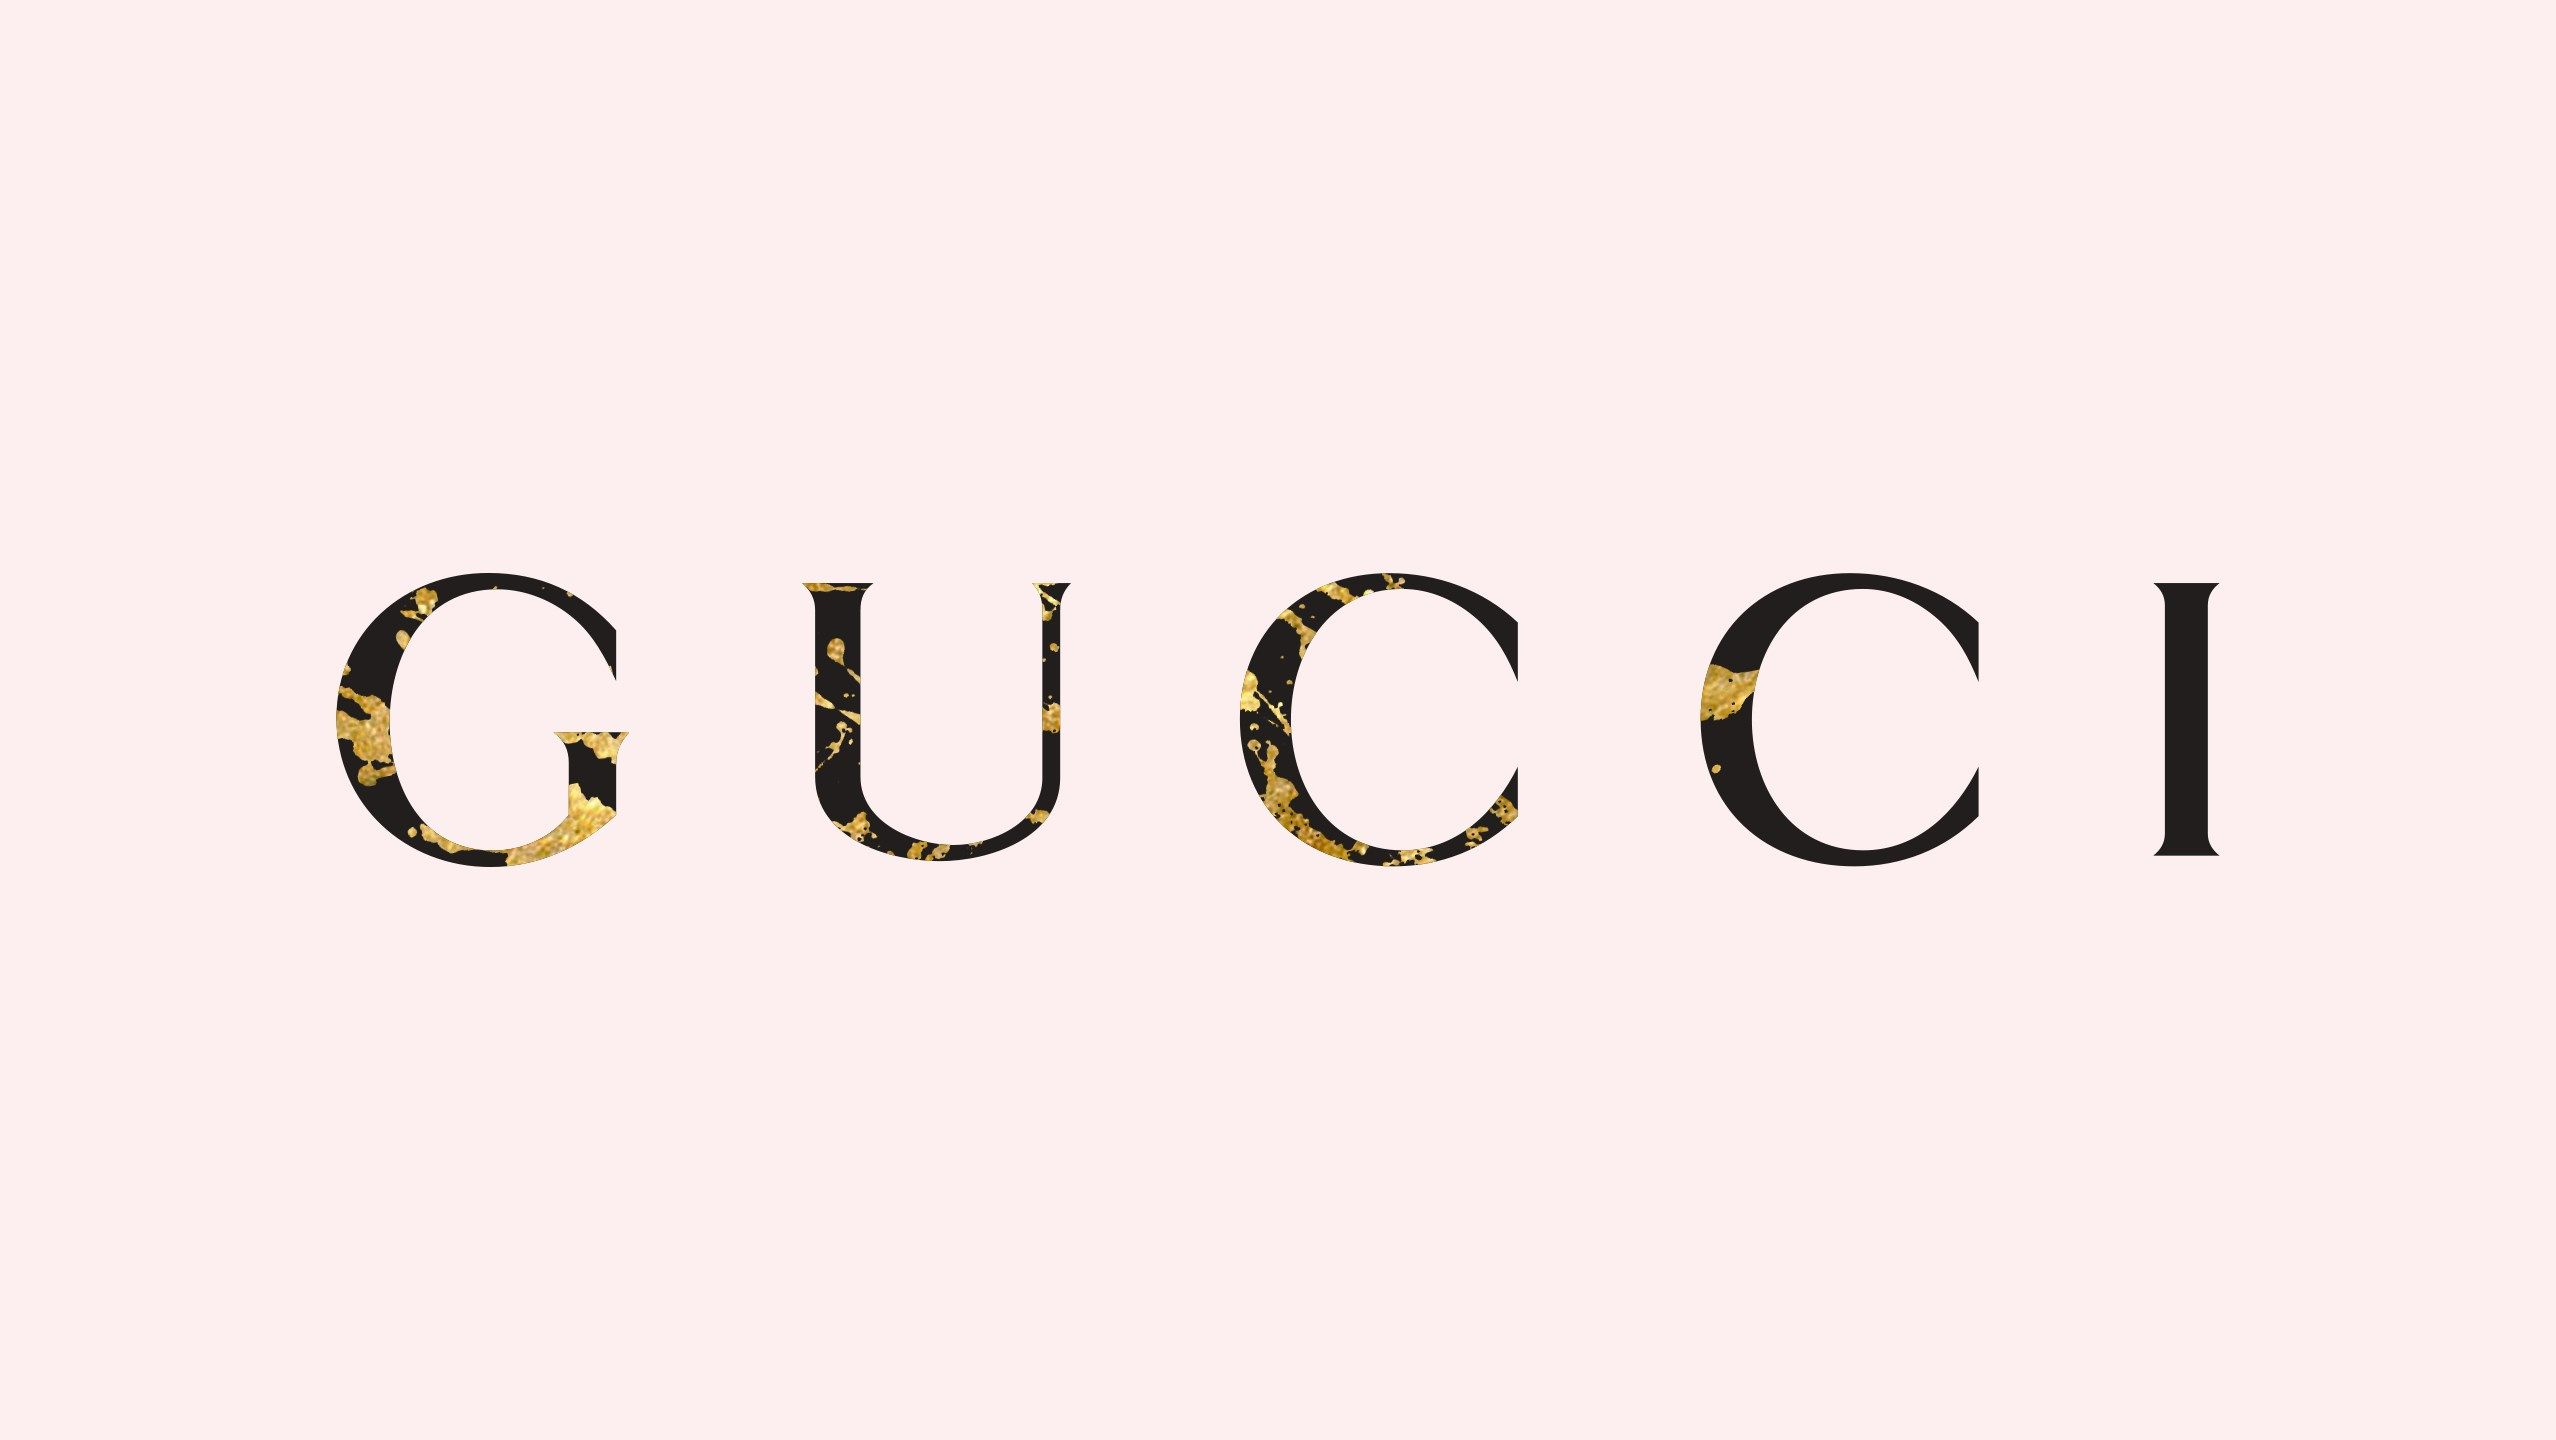 1612116, free computer wallpaper for gucci